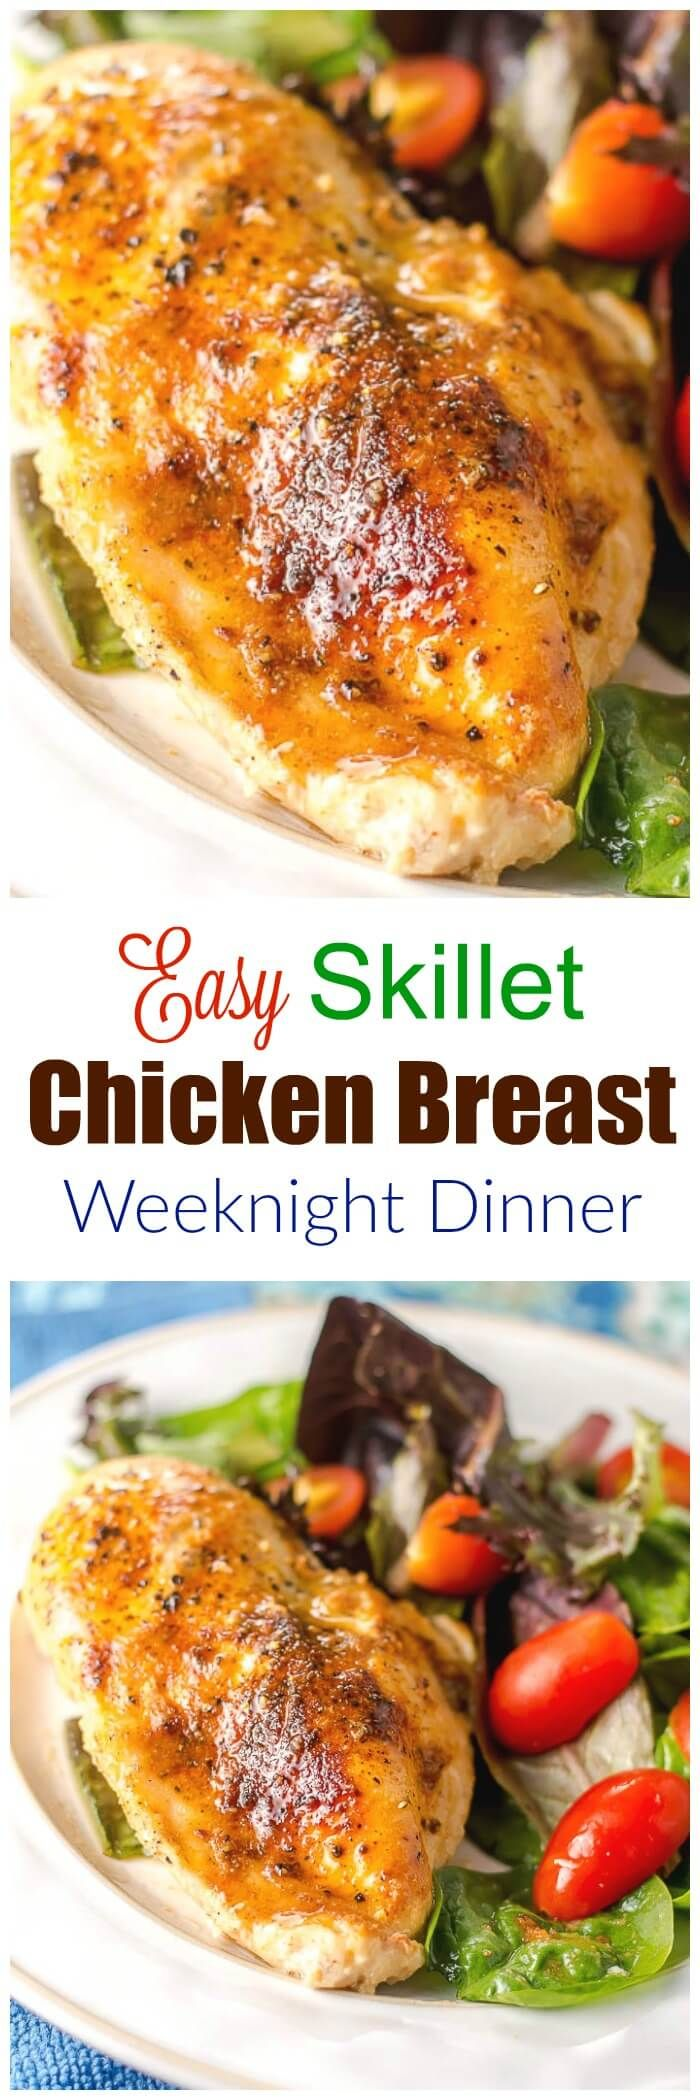 This Easy Skillet Chicken Breast Weeknight Dinner is simple and delicious and can be on the dinner table in 30 minutes. via @flavormosaic